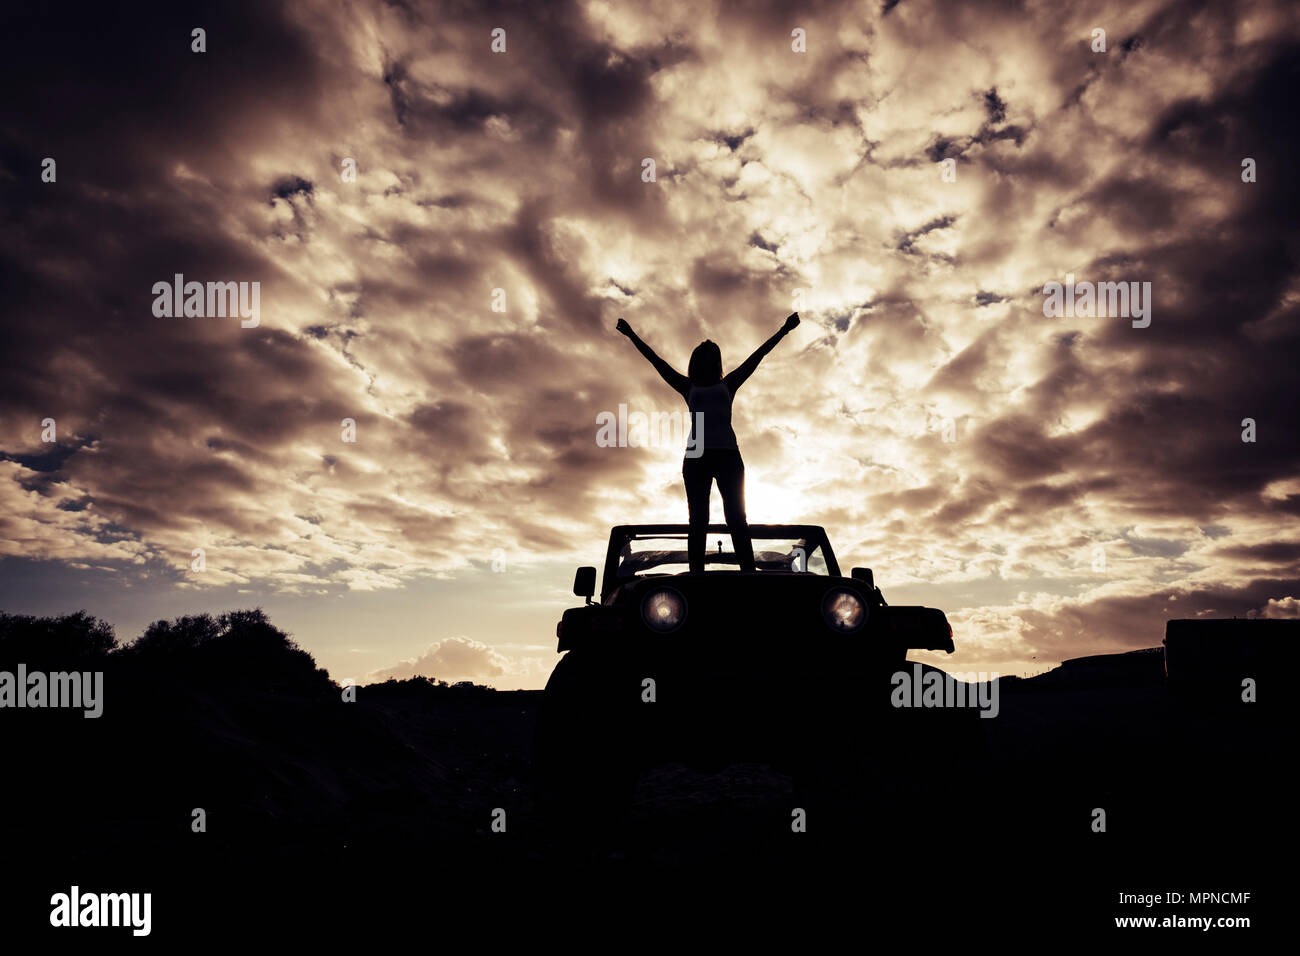 great sunset landscape and freedom alternative lifestyle concept. wanderlust and discover the world with girl. enjoying life Stock Photo